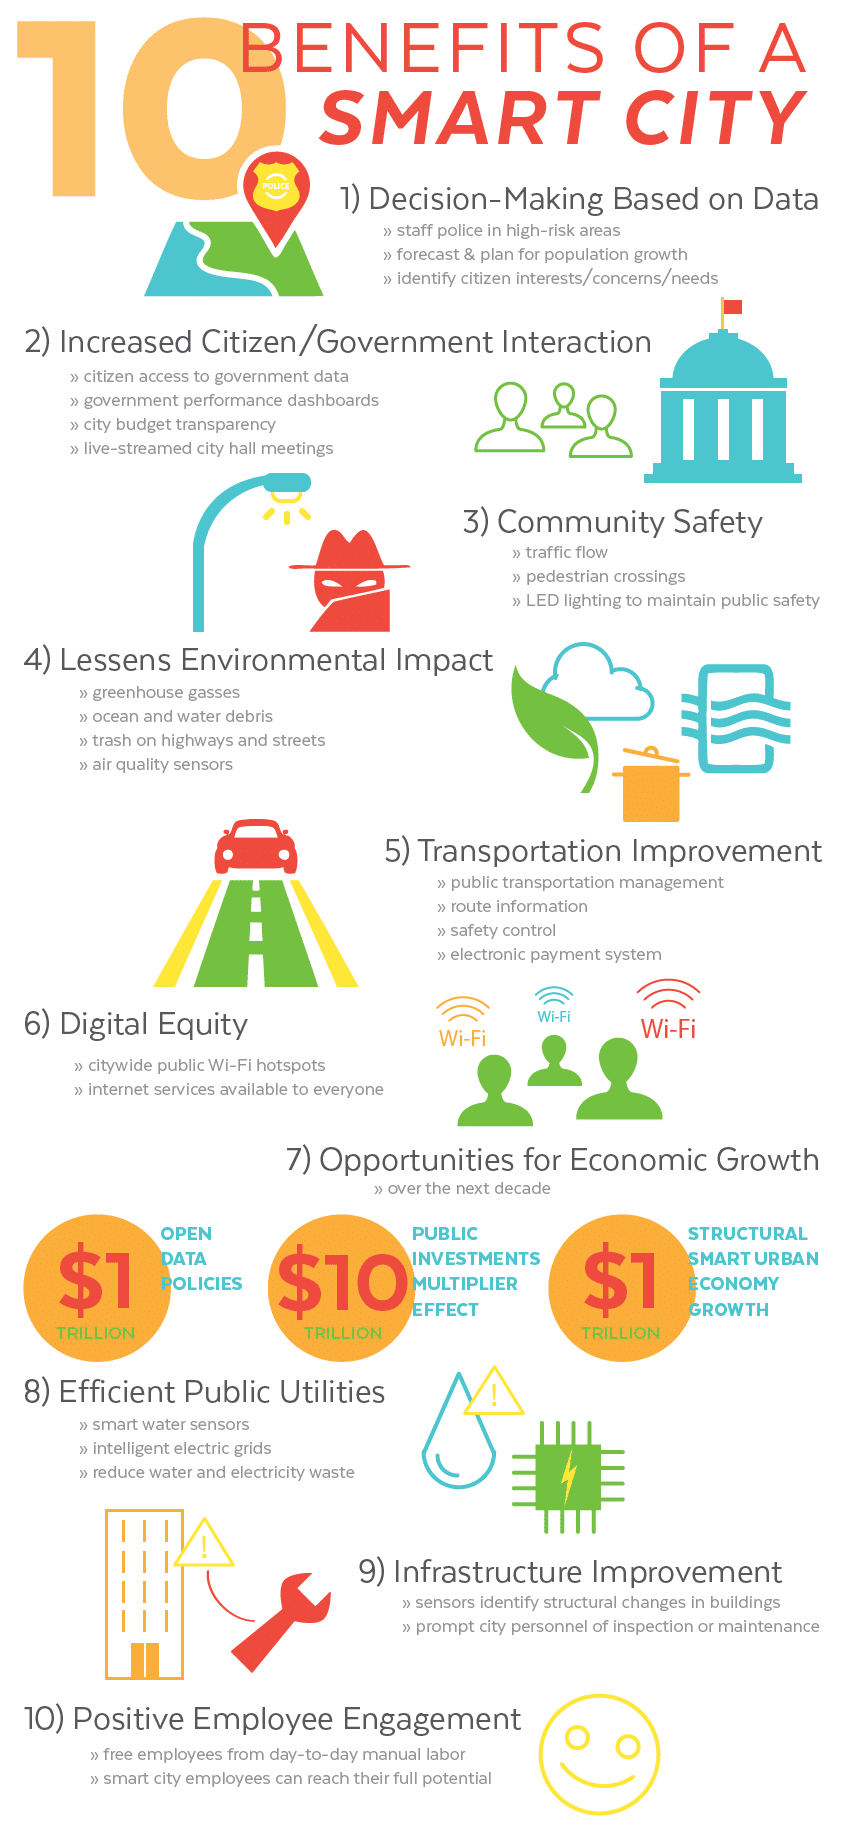 10 Benefits of Smart Cities Infographic